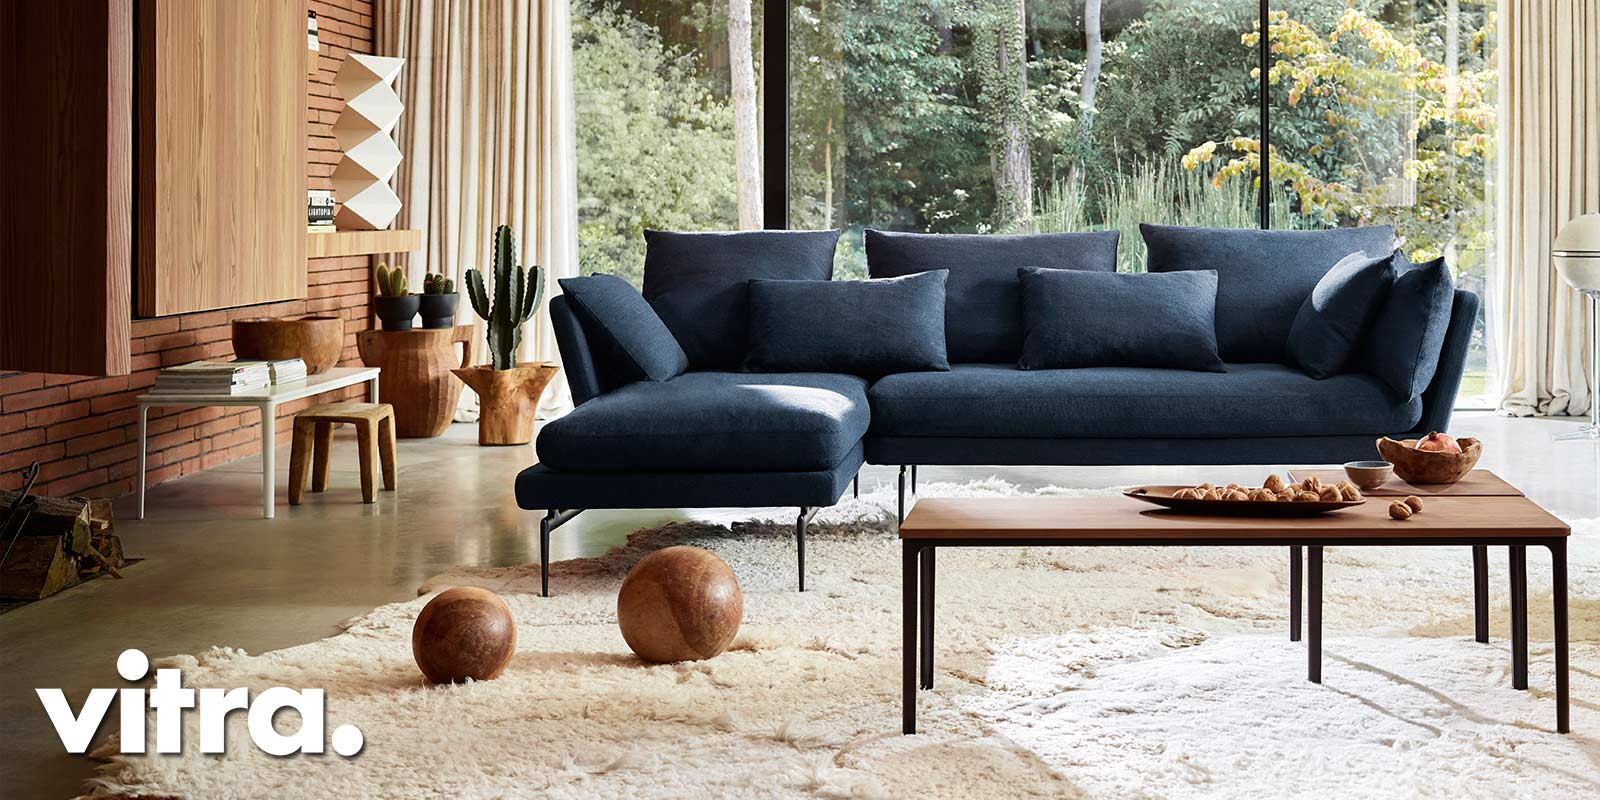 Vitra Suita Sofa & Plate Tables - Home Stories For Winter 2018